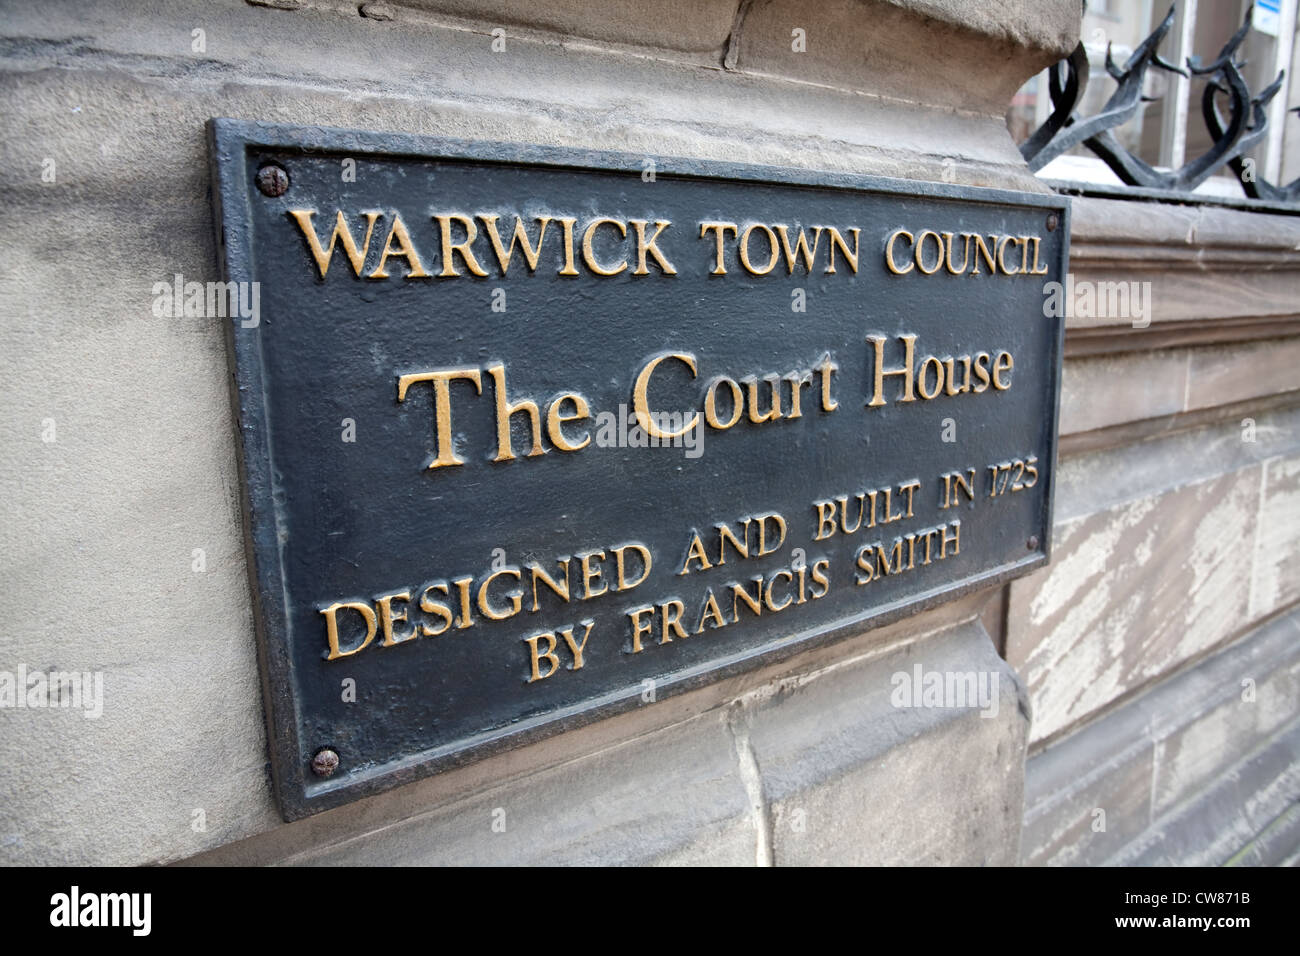 The Court House sign, Warwick Town Council building, Warwick town centre. - Stock Image